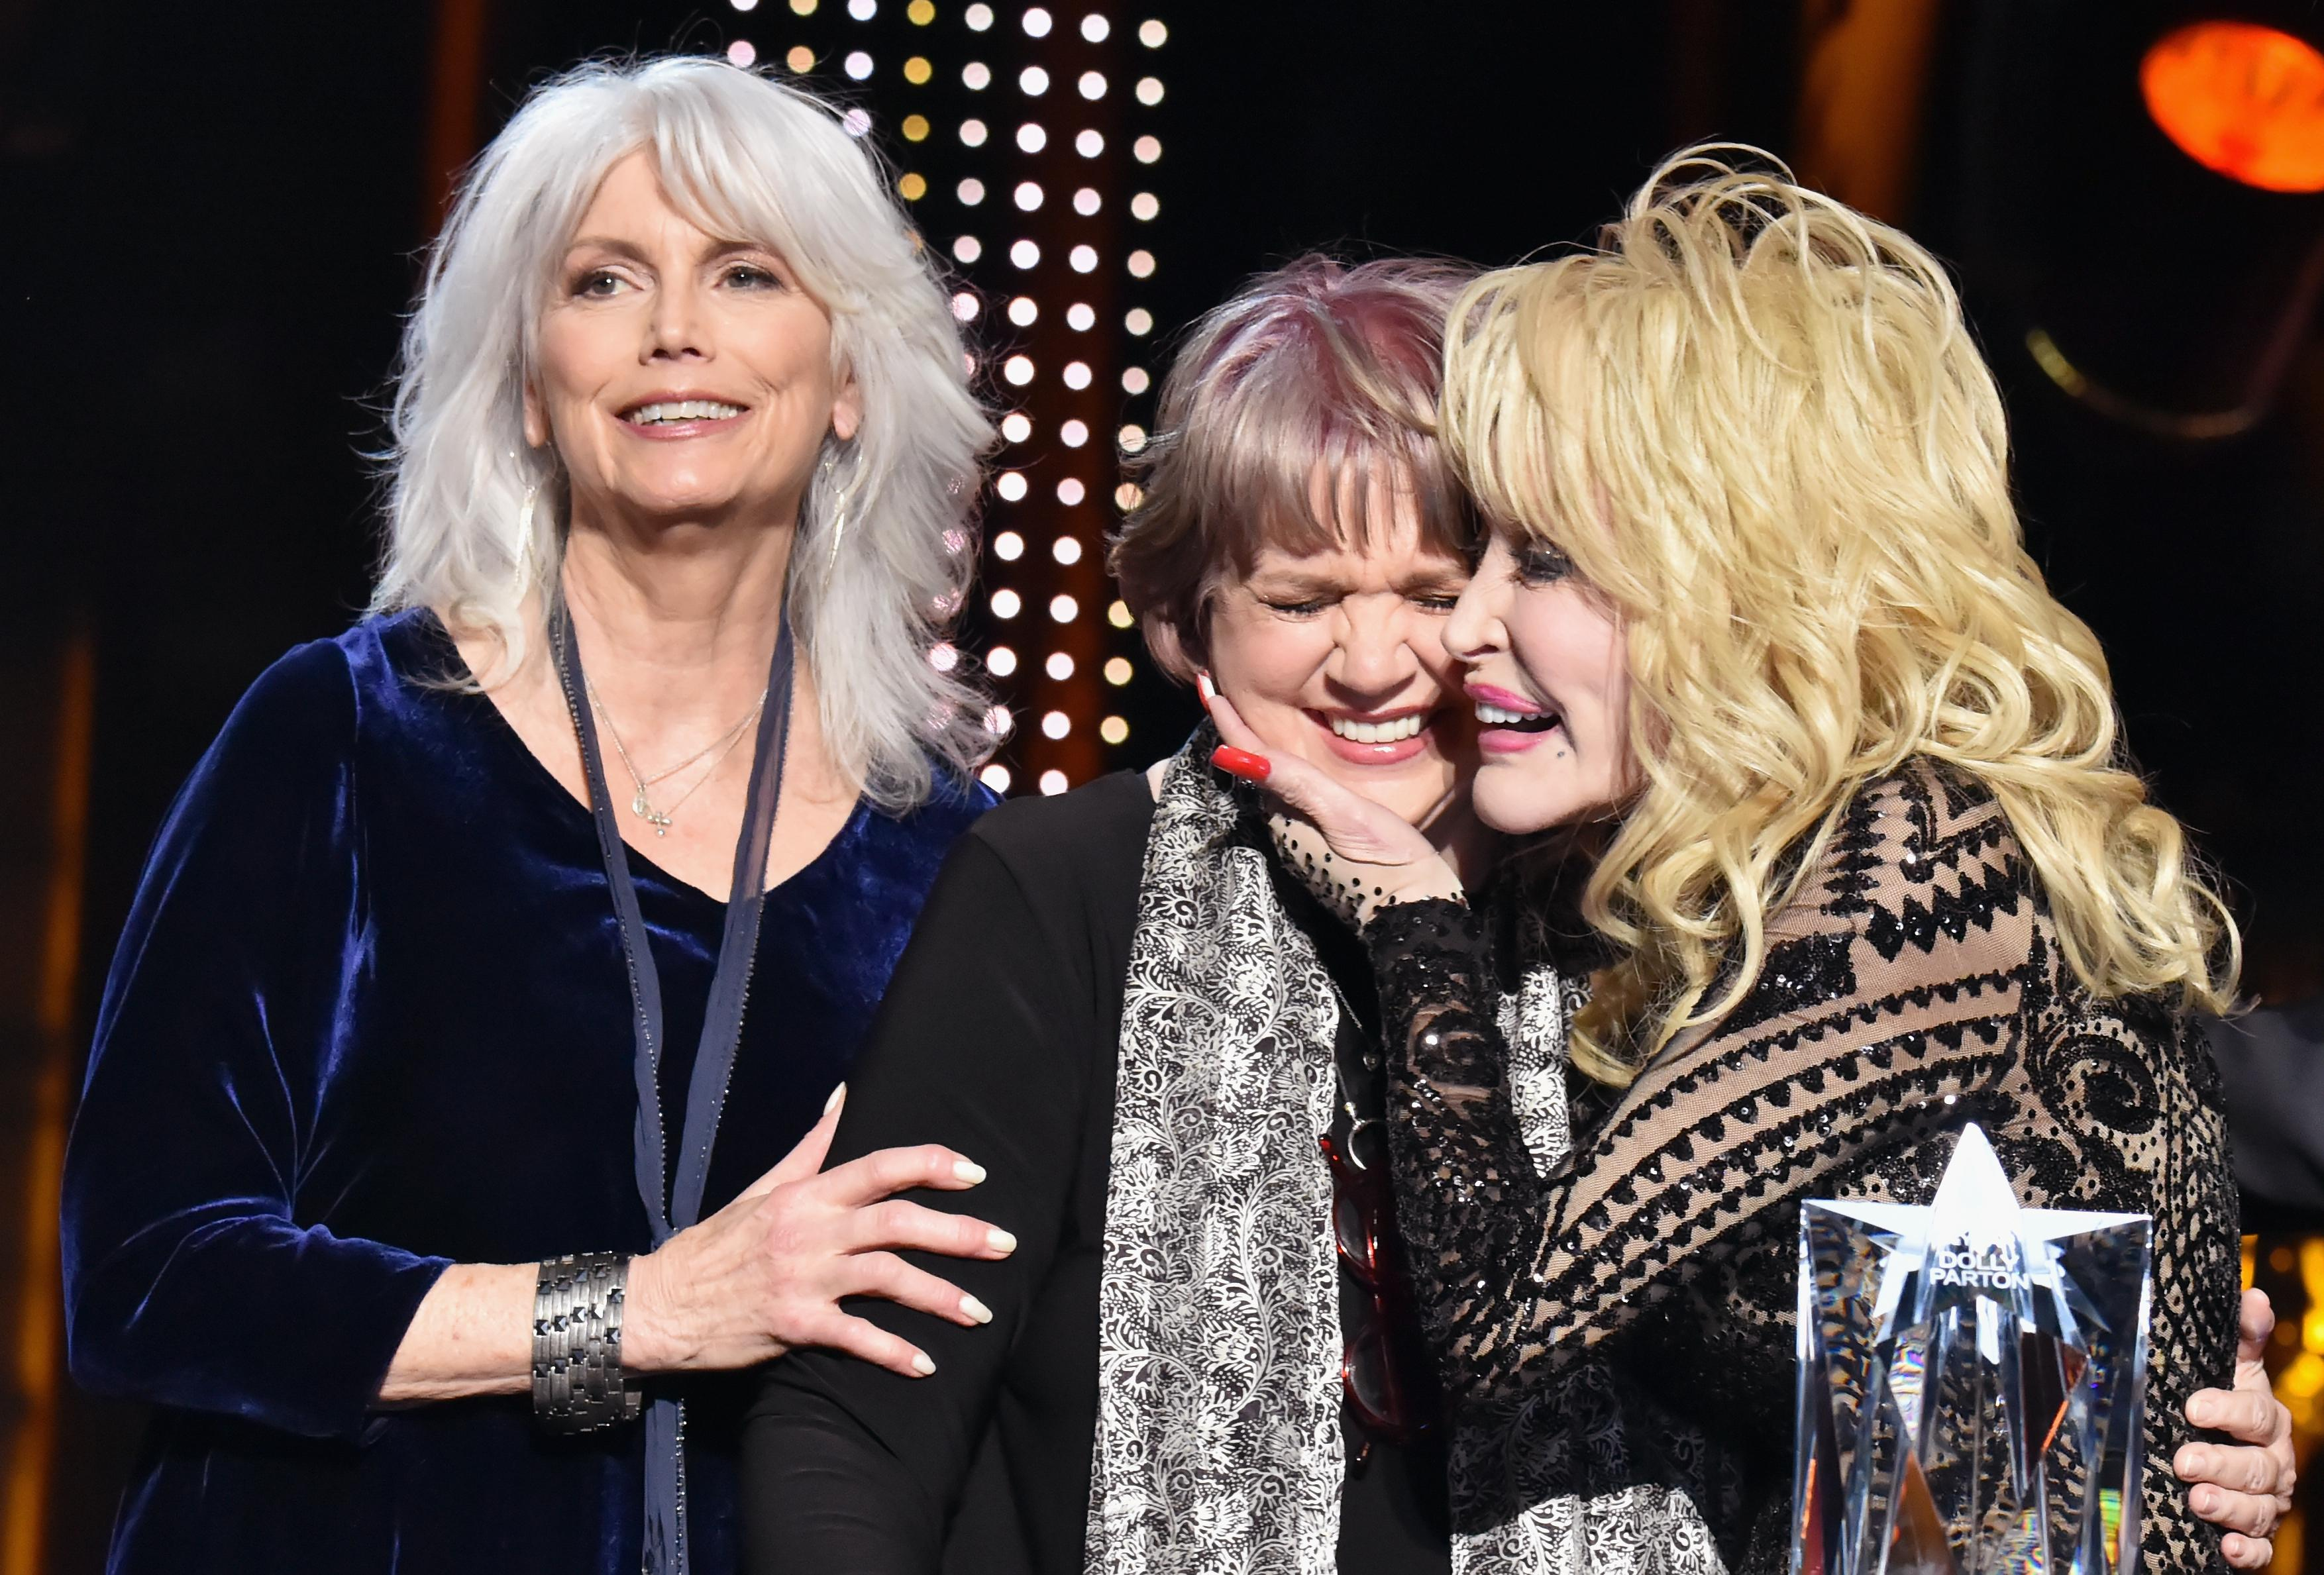 Linda Ronstadt Rare Public Appearance To Honor Dolly Parton